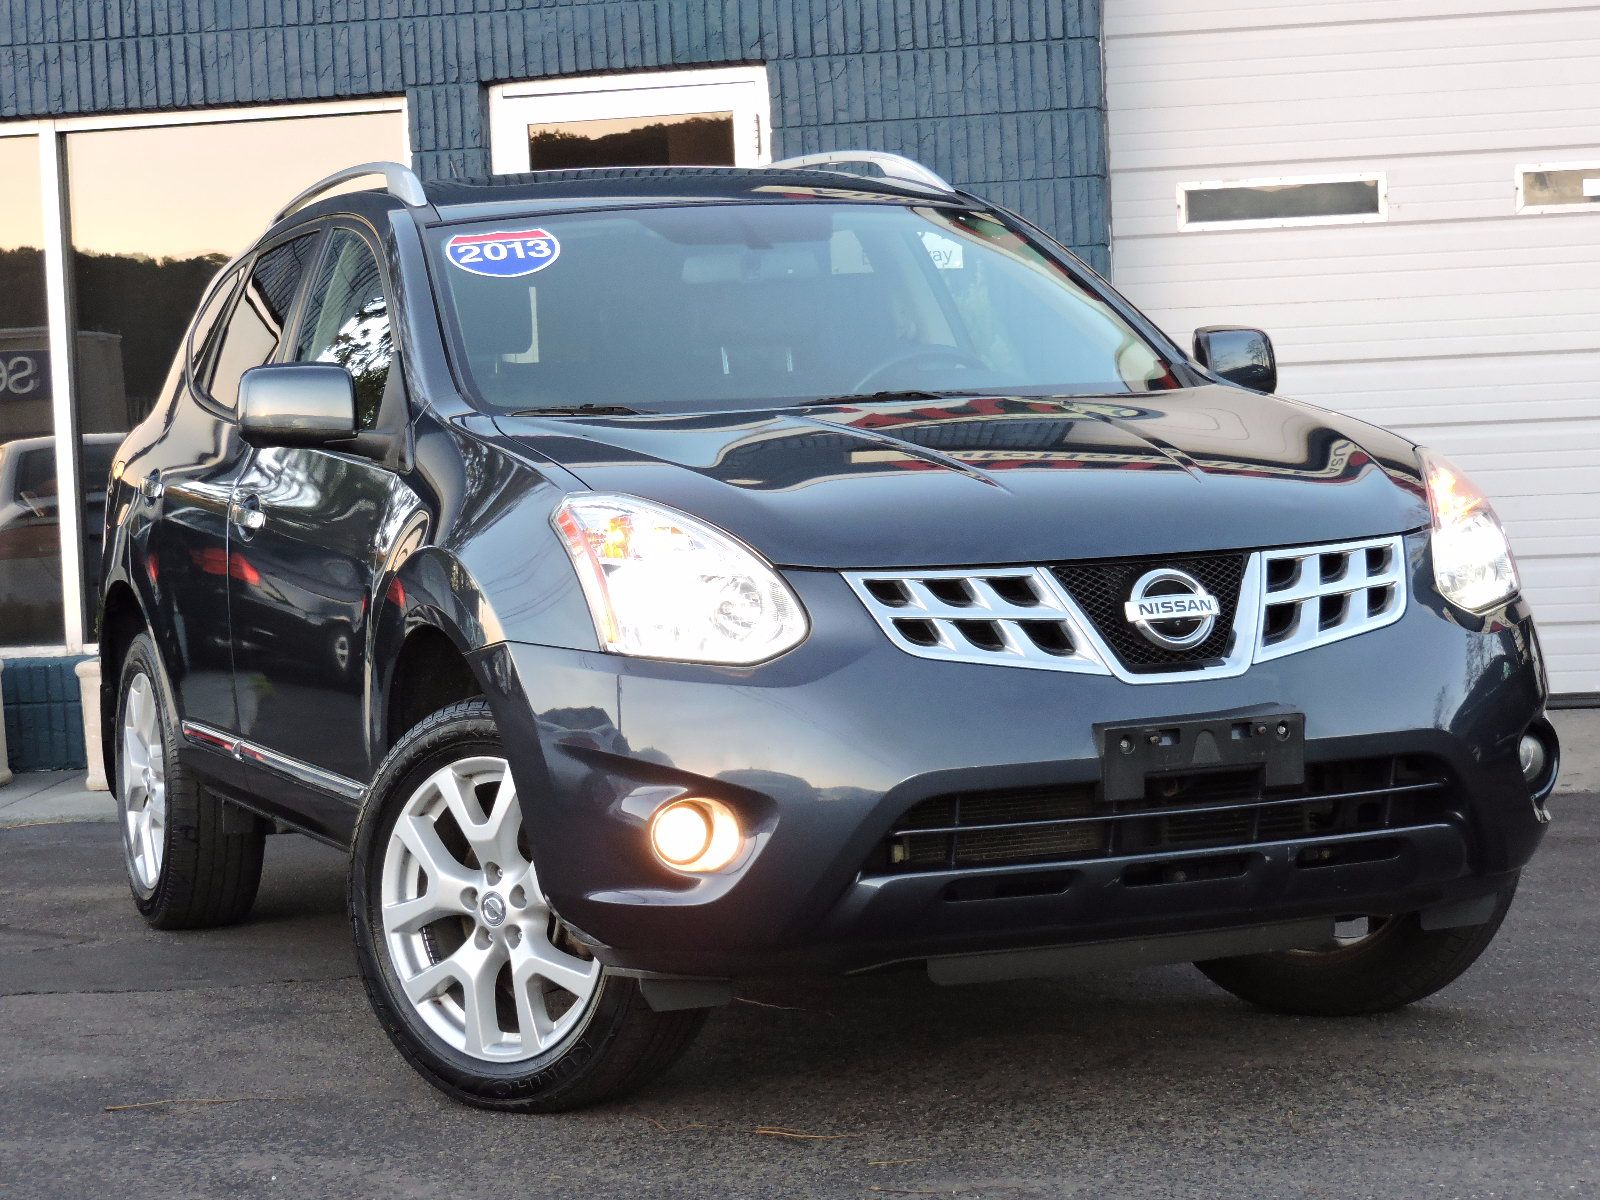 sl nissan newton in suv nc hickory rogue area rouge htm gastonia